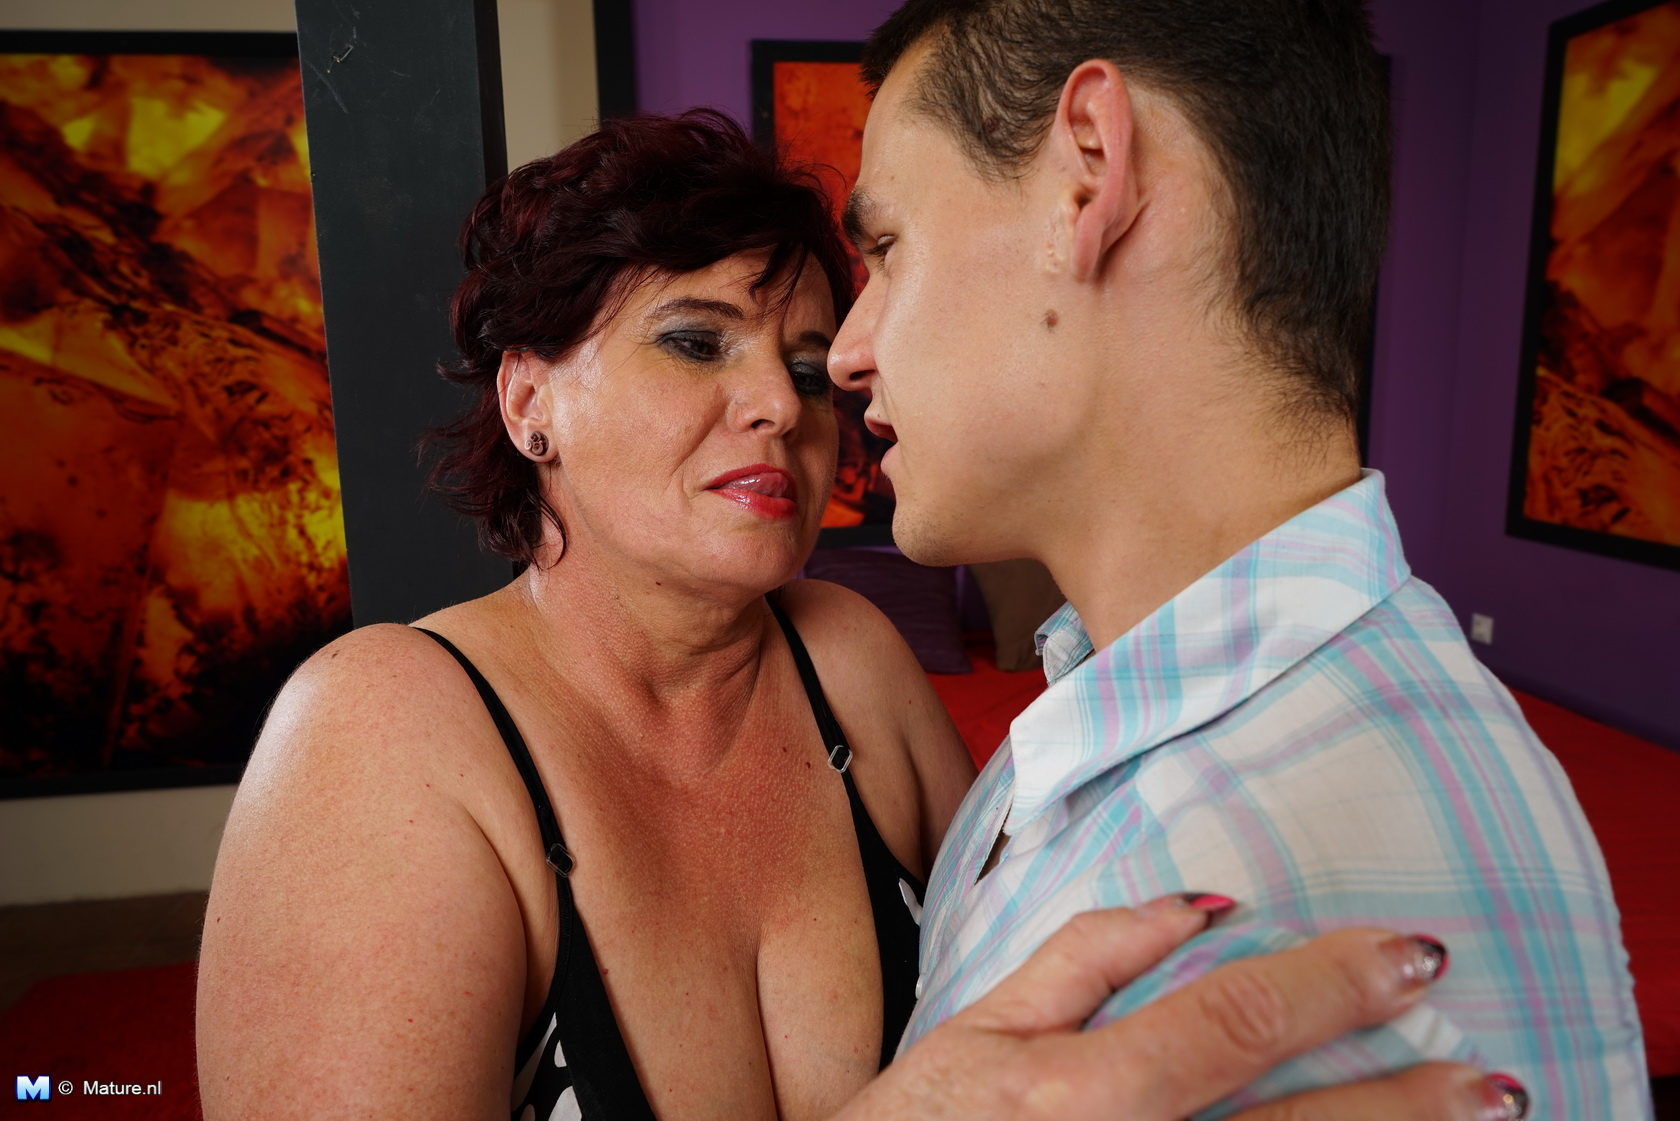 This plaything man loves pleasuring a crazy mature lady